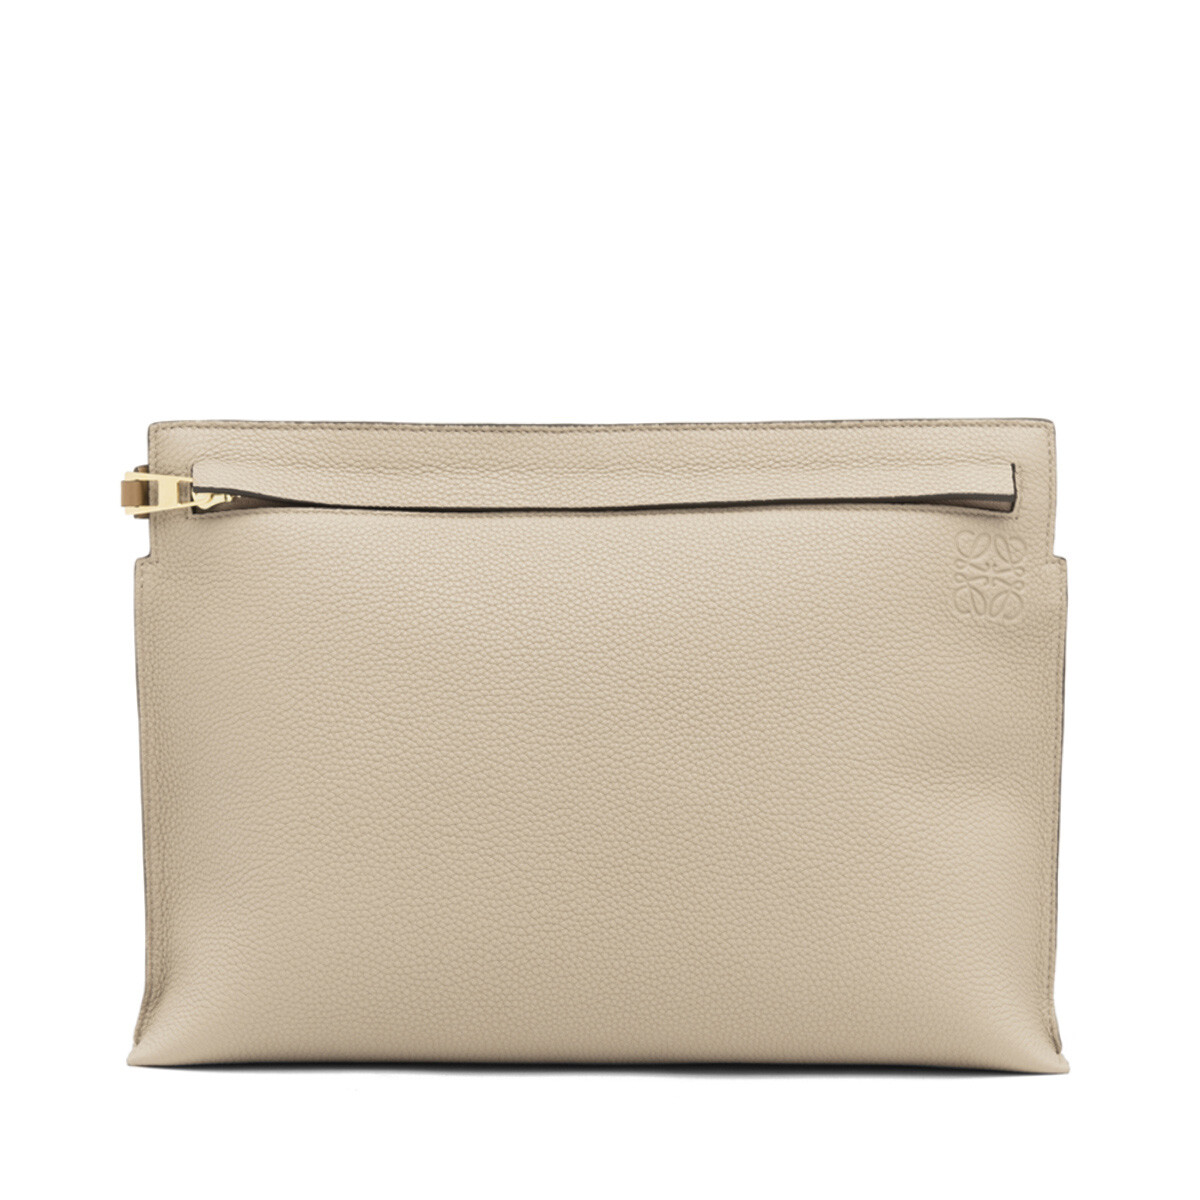 LOEWE T Pouch Sand front